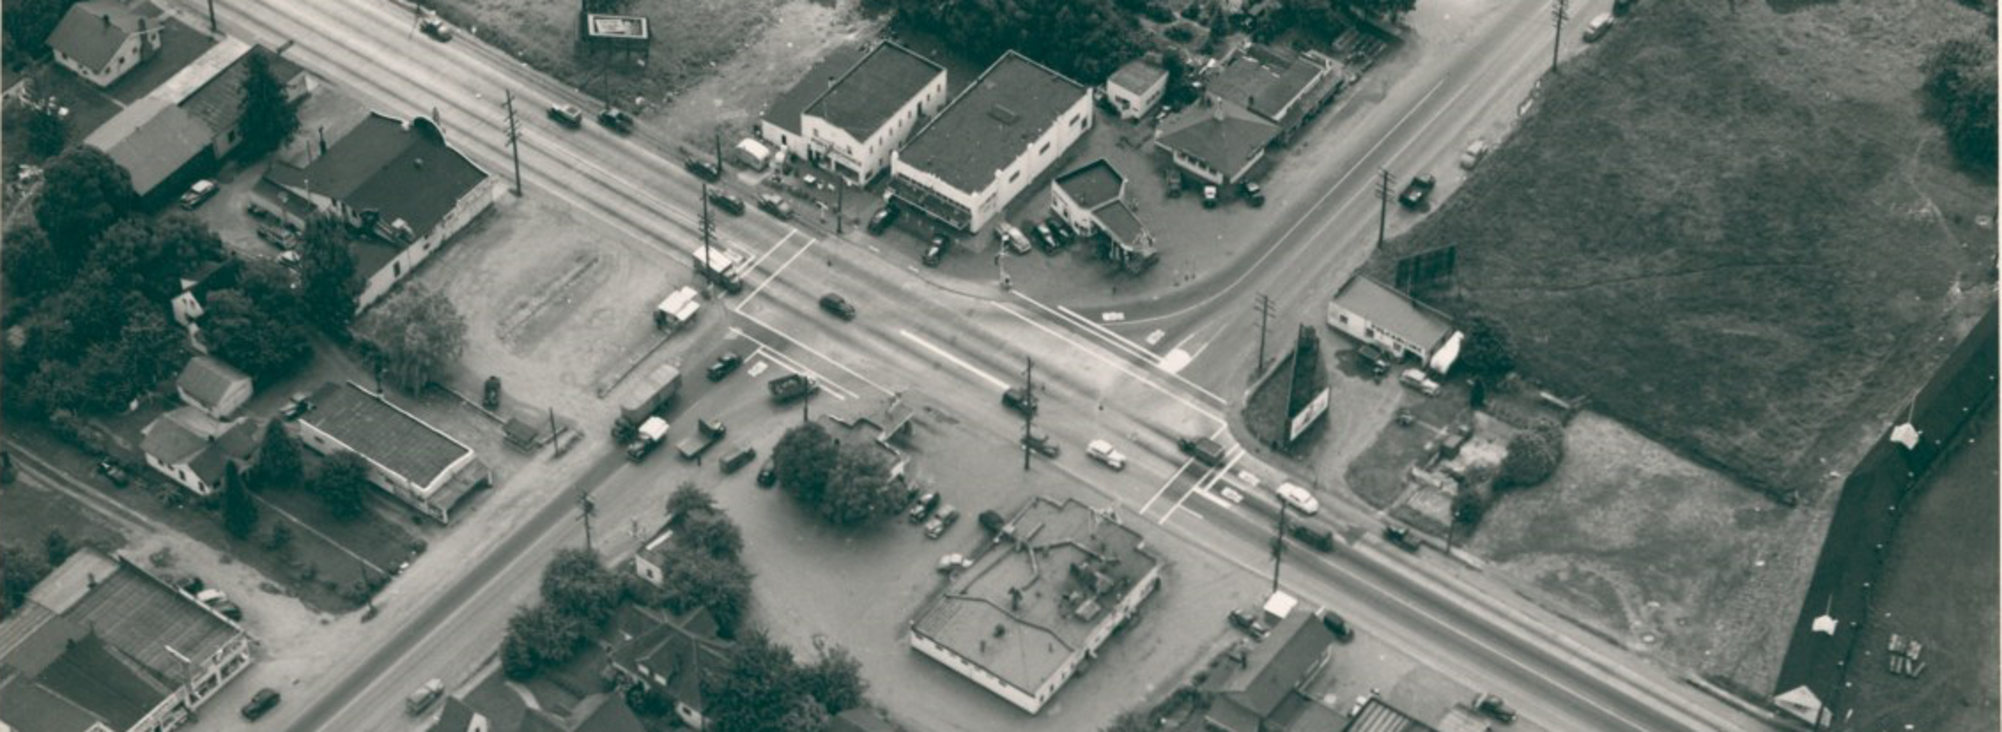 82nd and Division: 1947